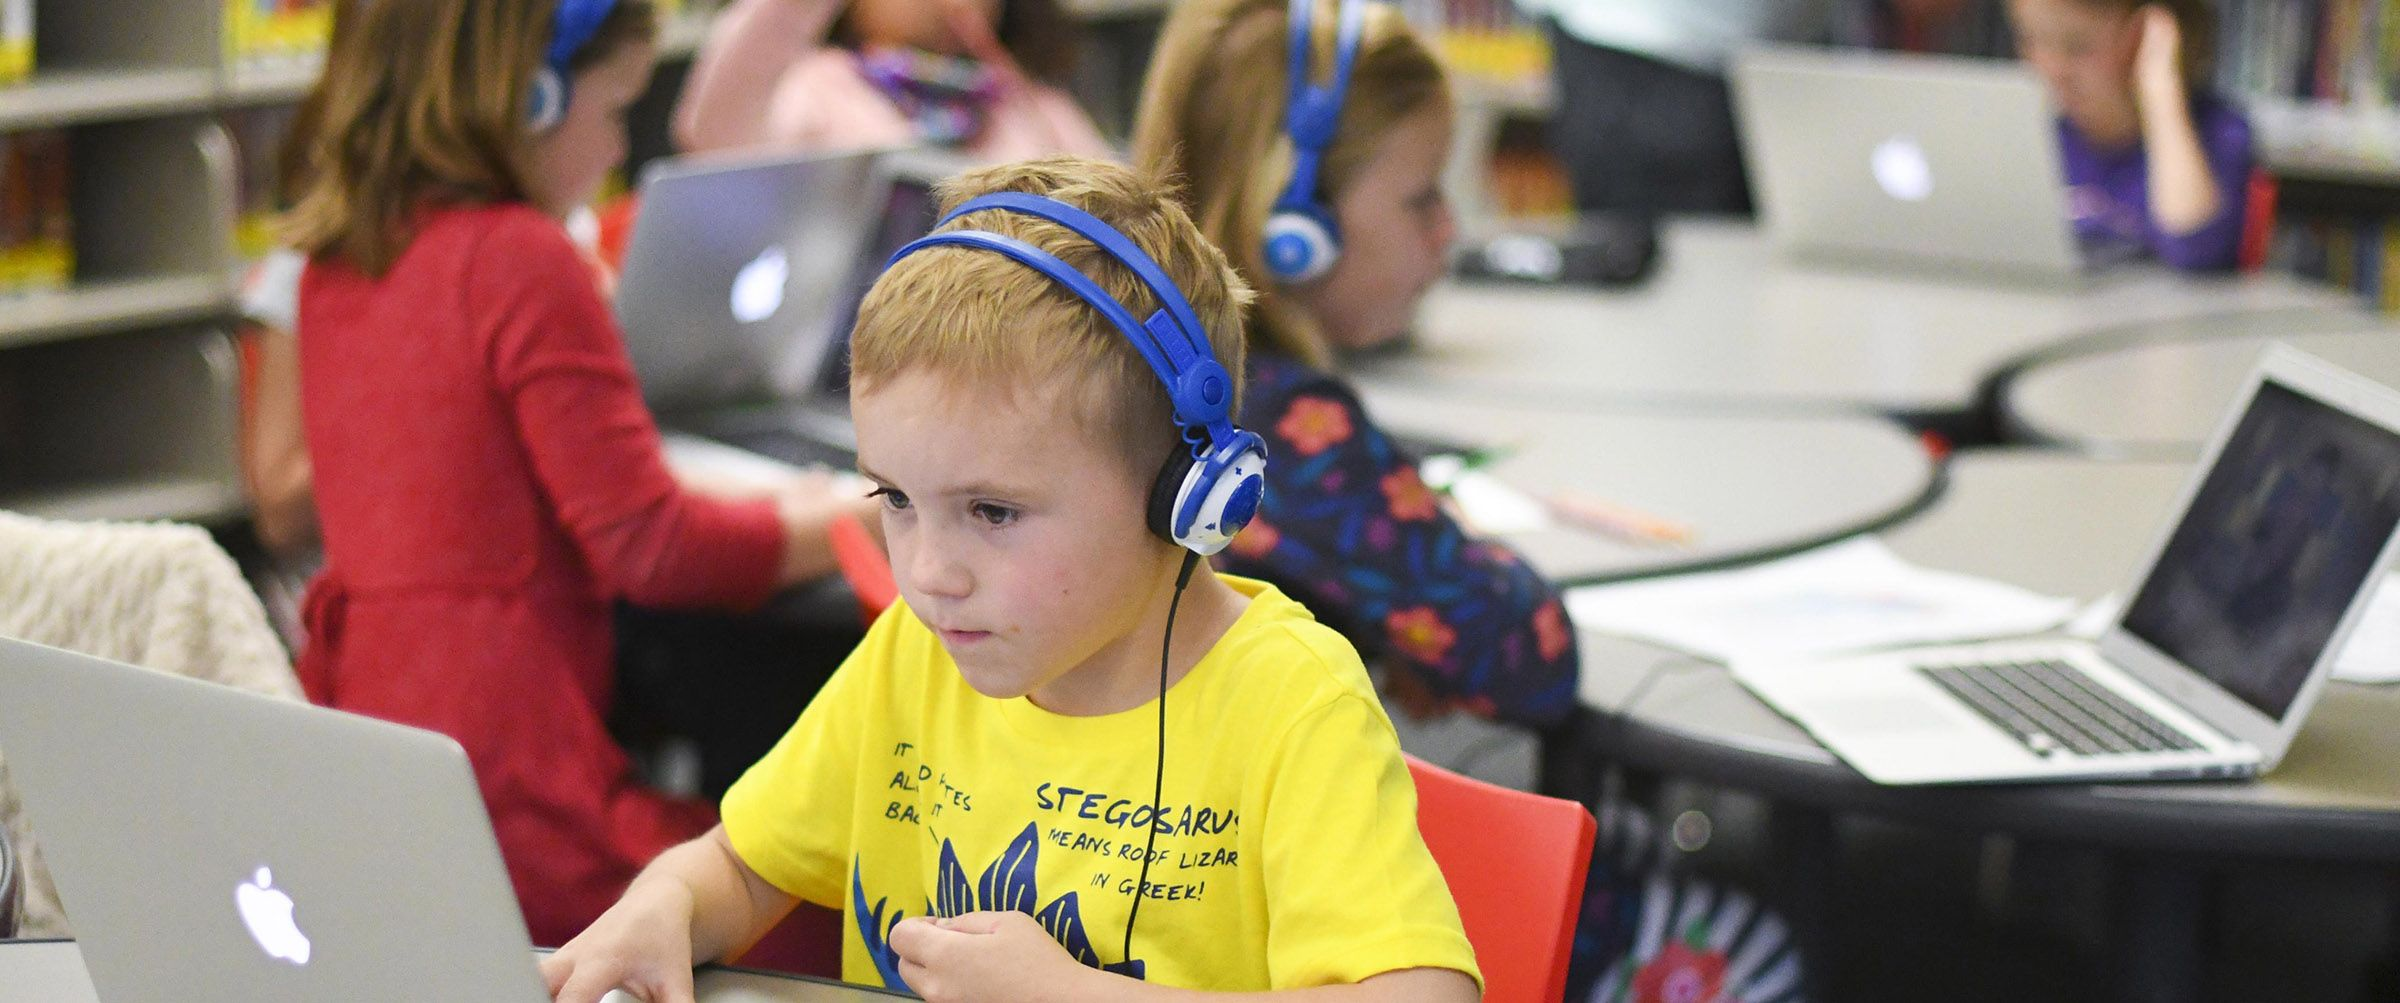 Boy on computer with headphones on in the Lower School Library. Colorado Academy, a top private PK-12 school in Denver.